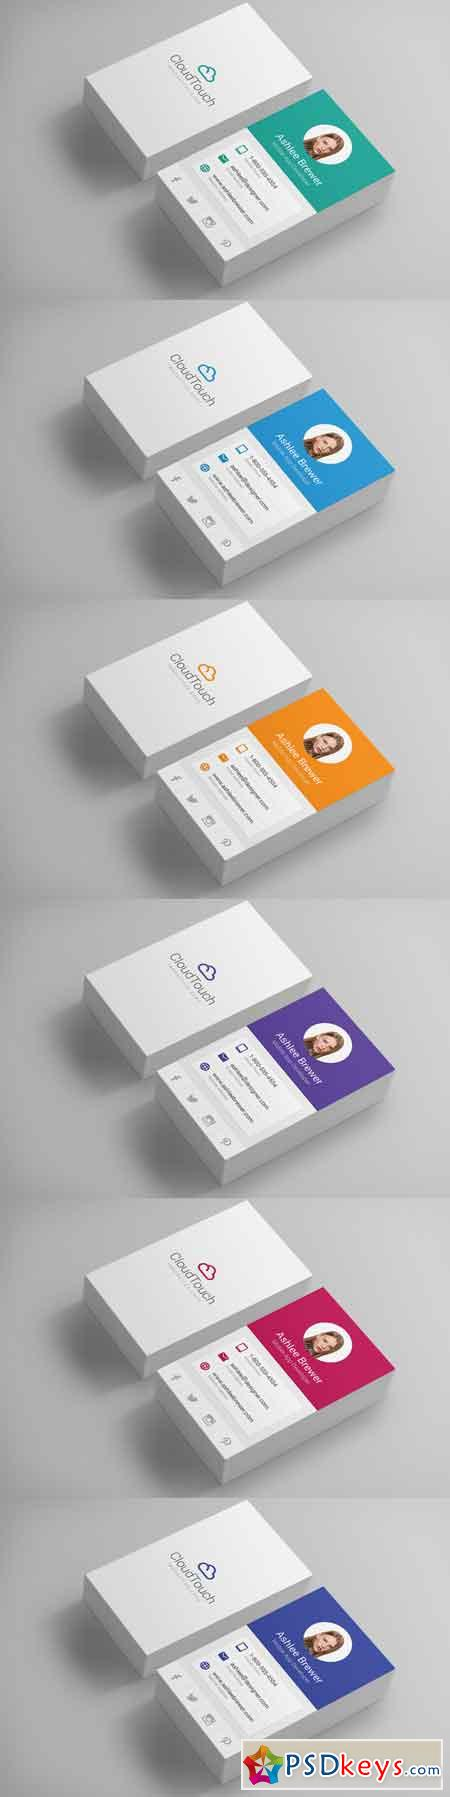 Material design business cards 703967 free download for Material design business card